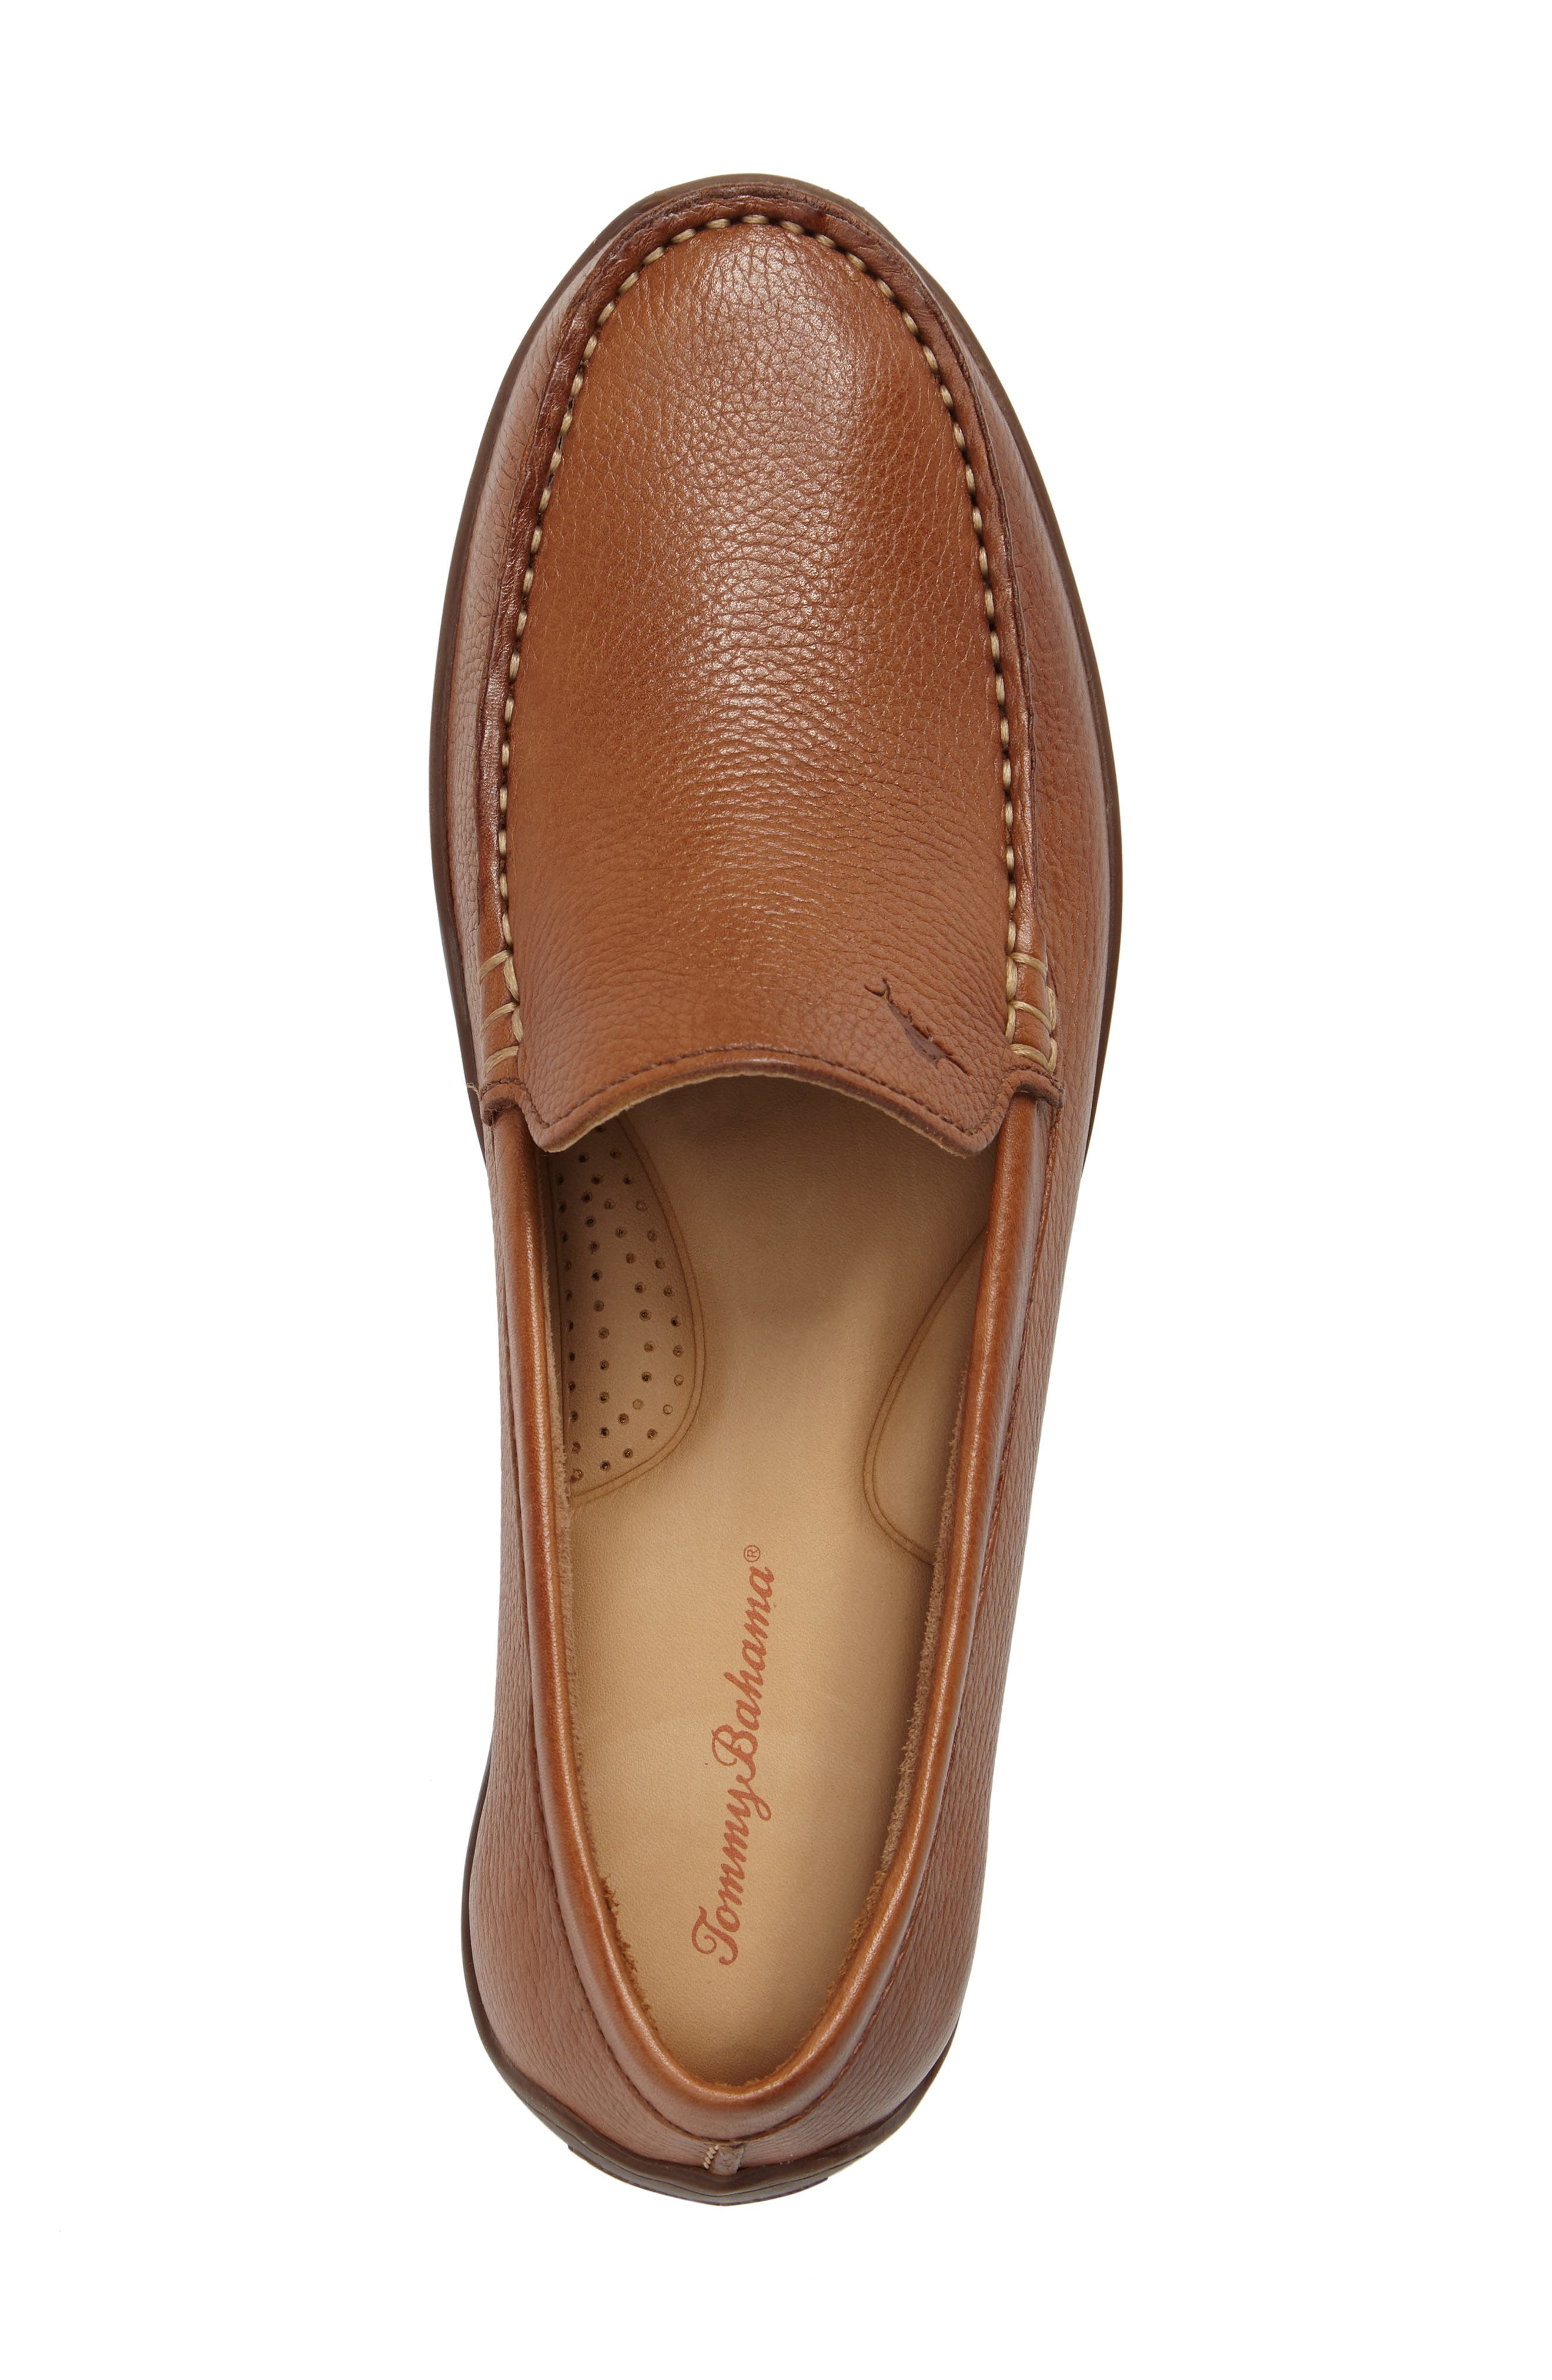 Orion Venetian Loafer,                             Alternate thumbnail 5, color,                             TAN LEATHER